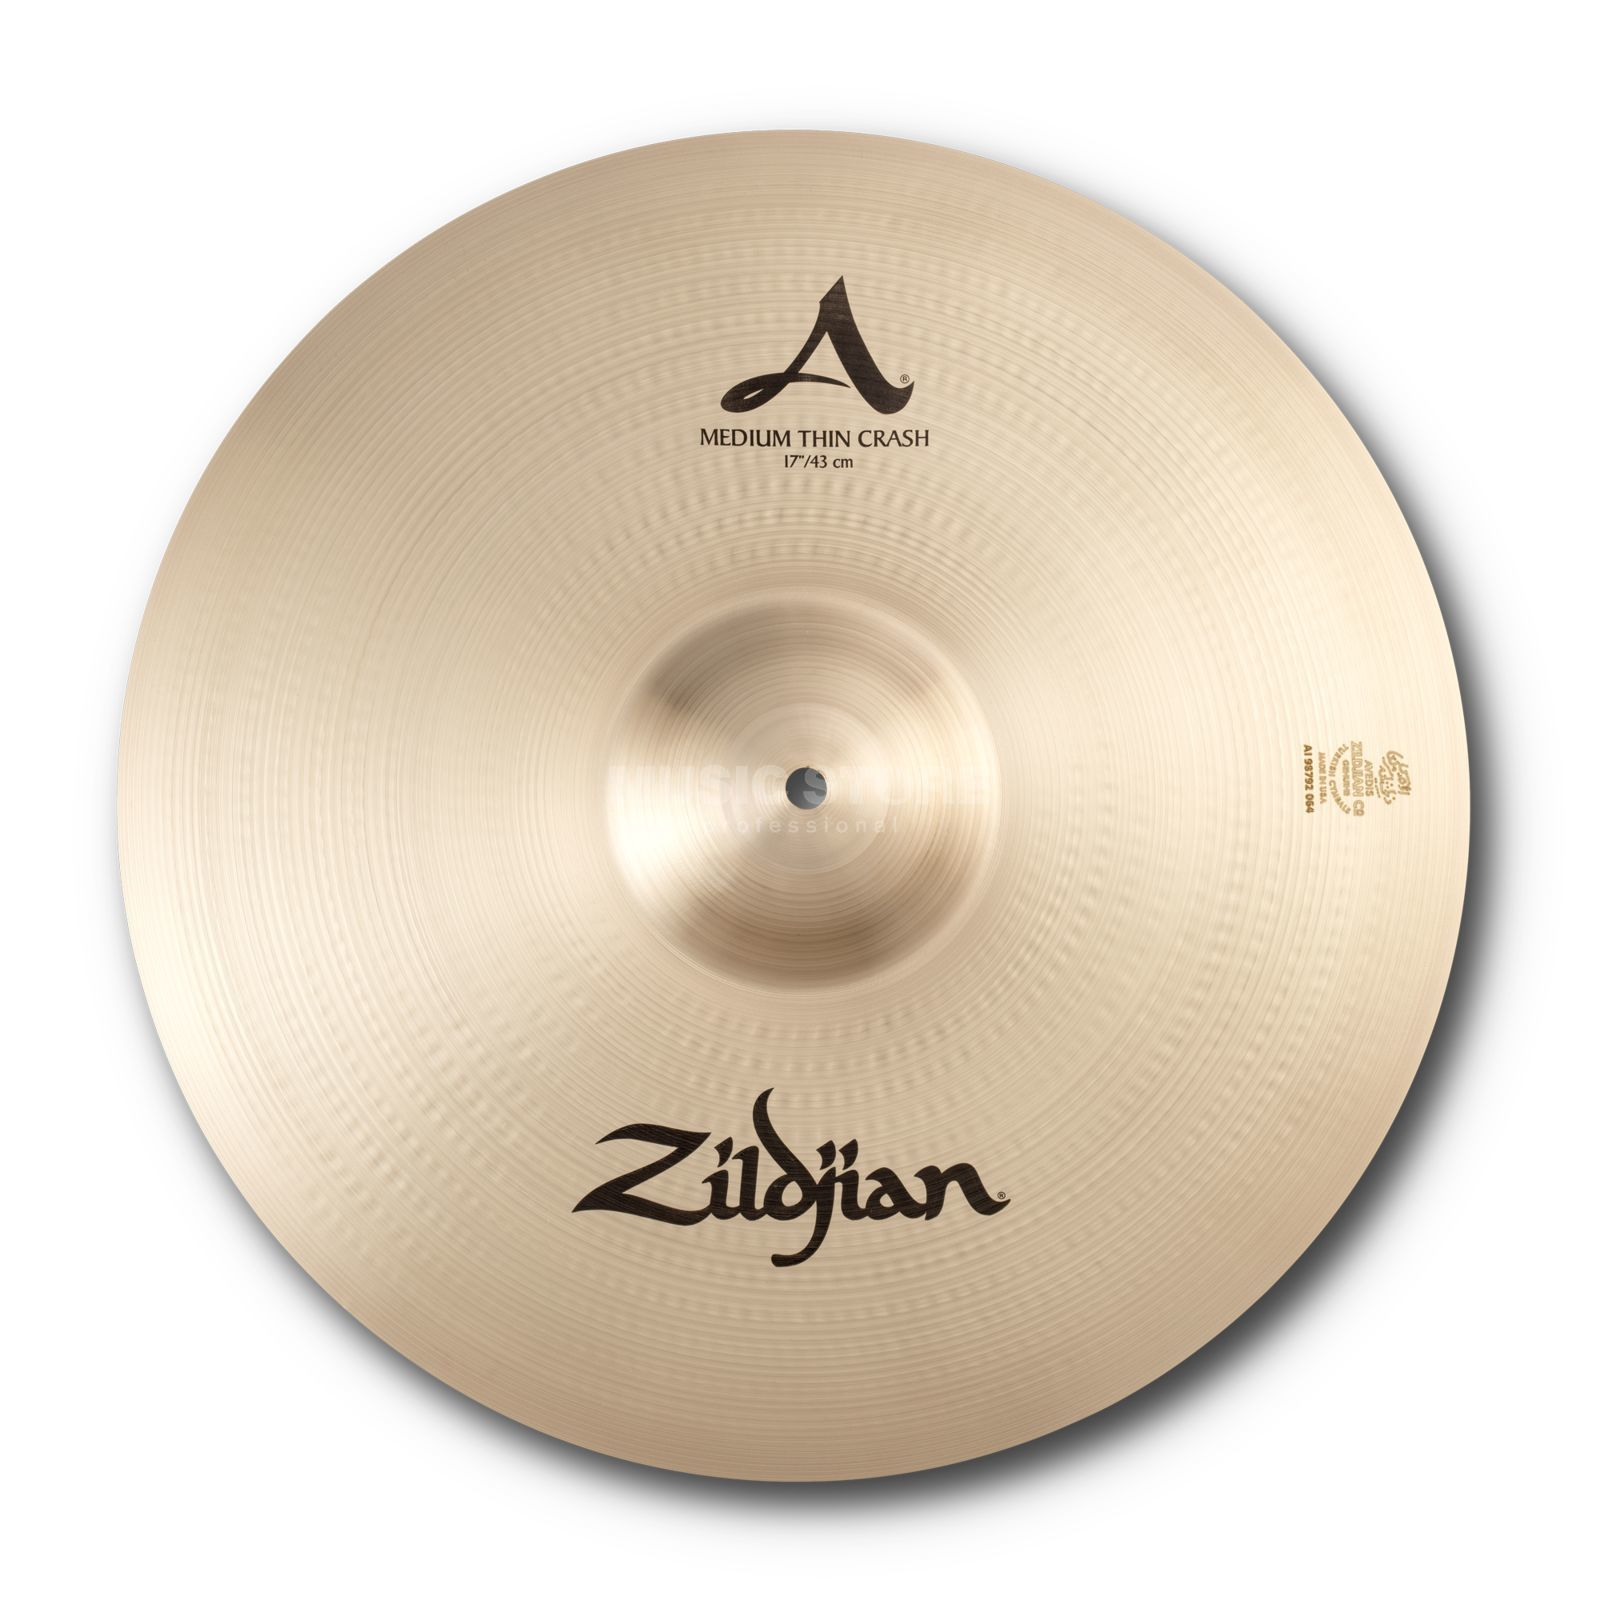 "Zildjian A' Zildjian Med/Thin Crash 17"", Traditional Finish Image du produit"